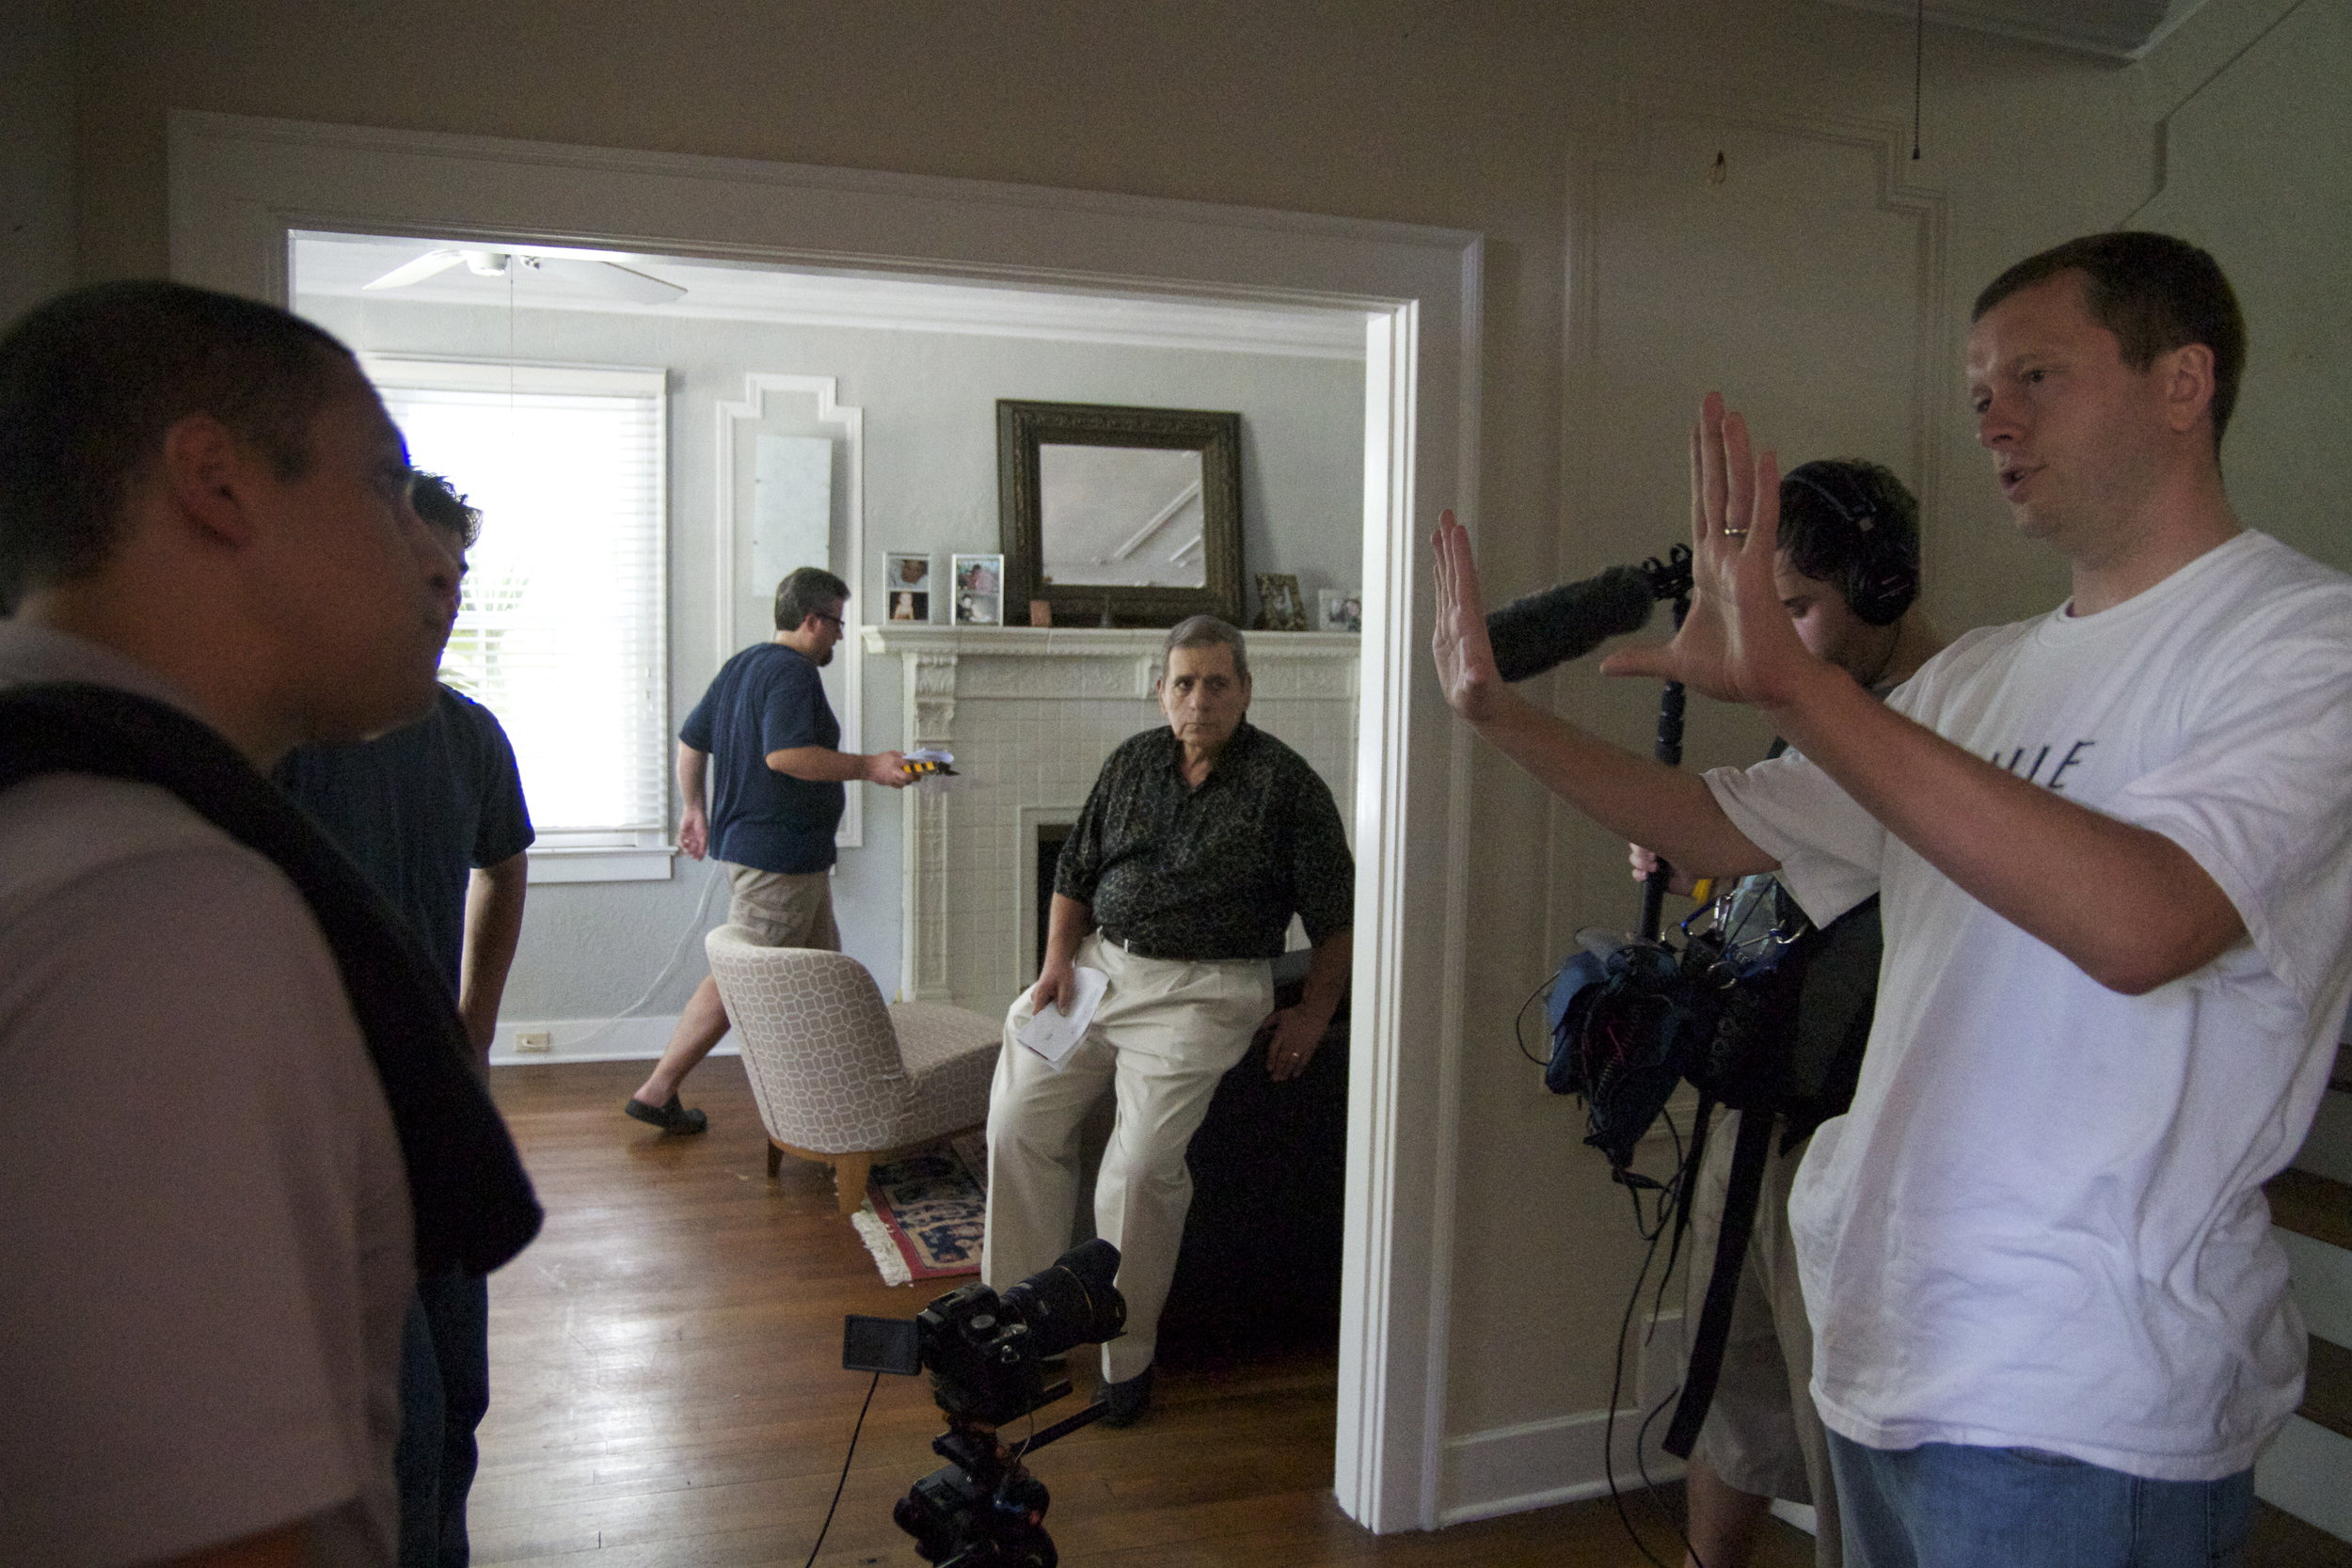 L-R: Sound mixer Jayson Martinez, assistant director Ted Souppa, actor Tony Berry, boom operator Kyle Austin, director Tim Ritter on set for Moment of Truth in 2012    Courtesy of Ashley LaRue